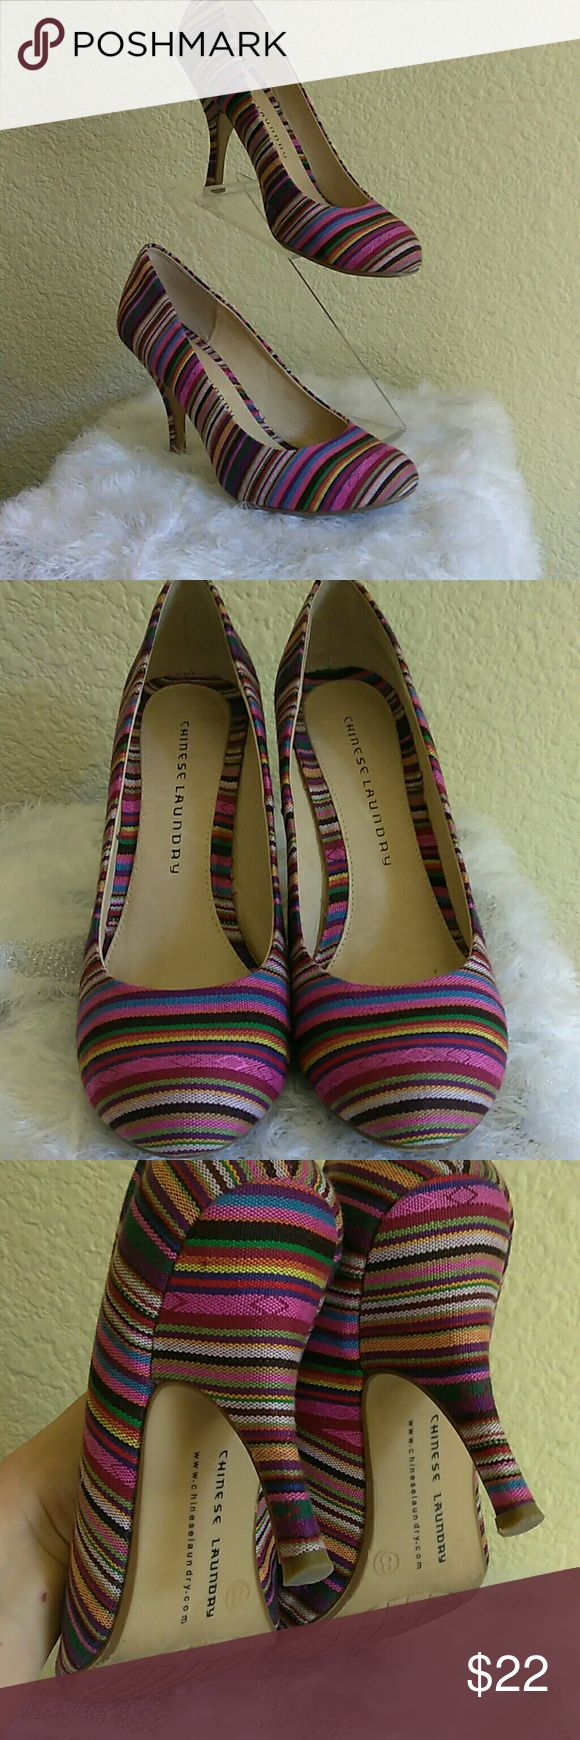 Chinese Laundry women's shoes. Chinese Laundry Women's pumps multi color stripes print pre-owned but still in great condition. Size 8 very comfortable, casual, they can go with almost anything! Chinese Laundry Shoes Heels